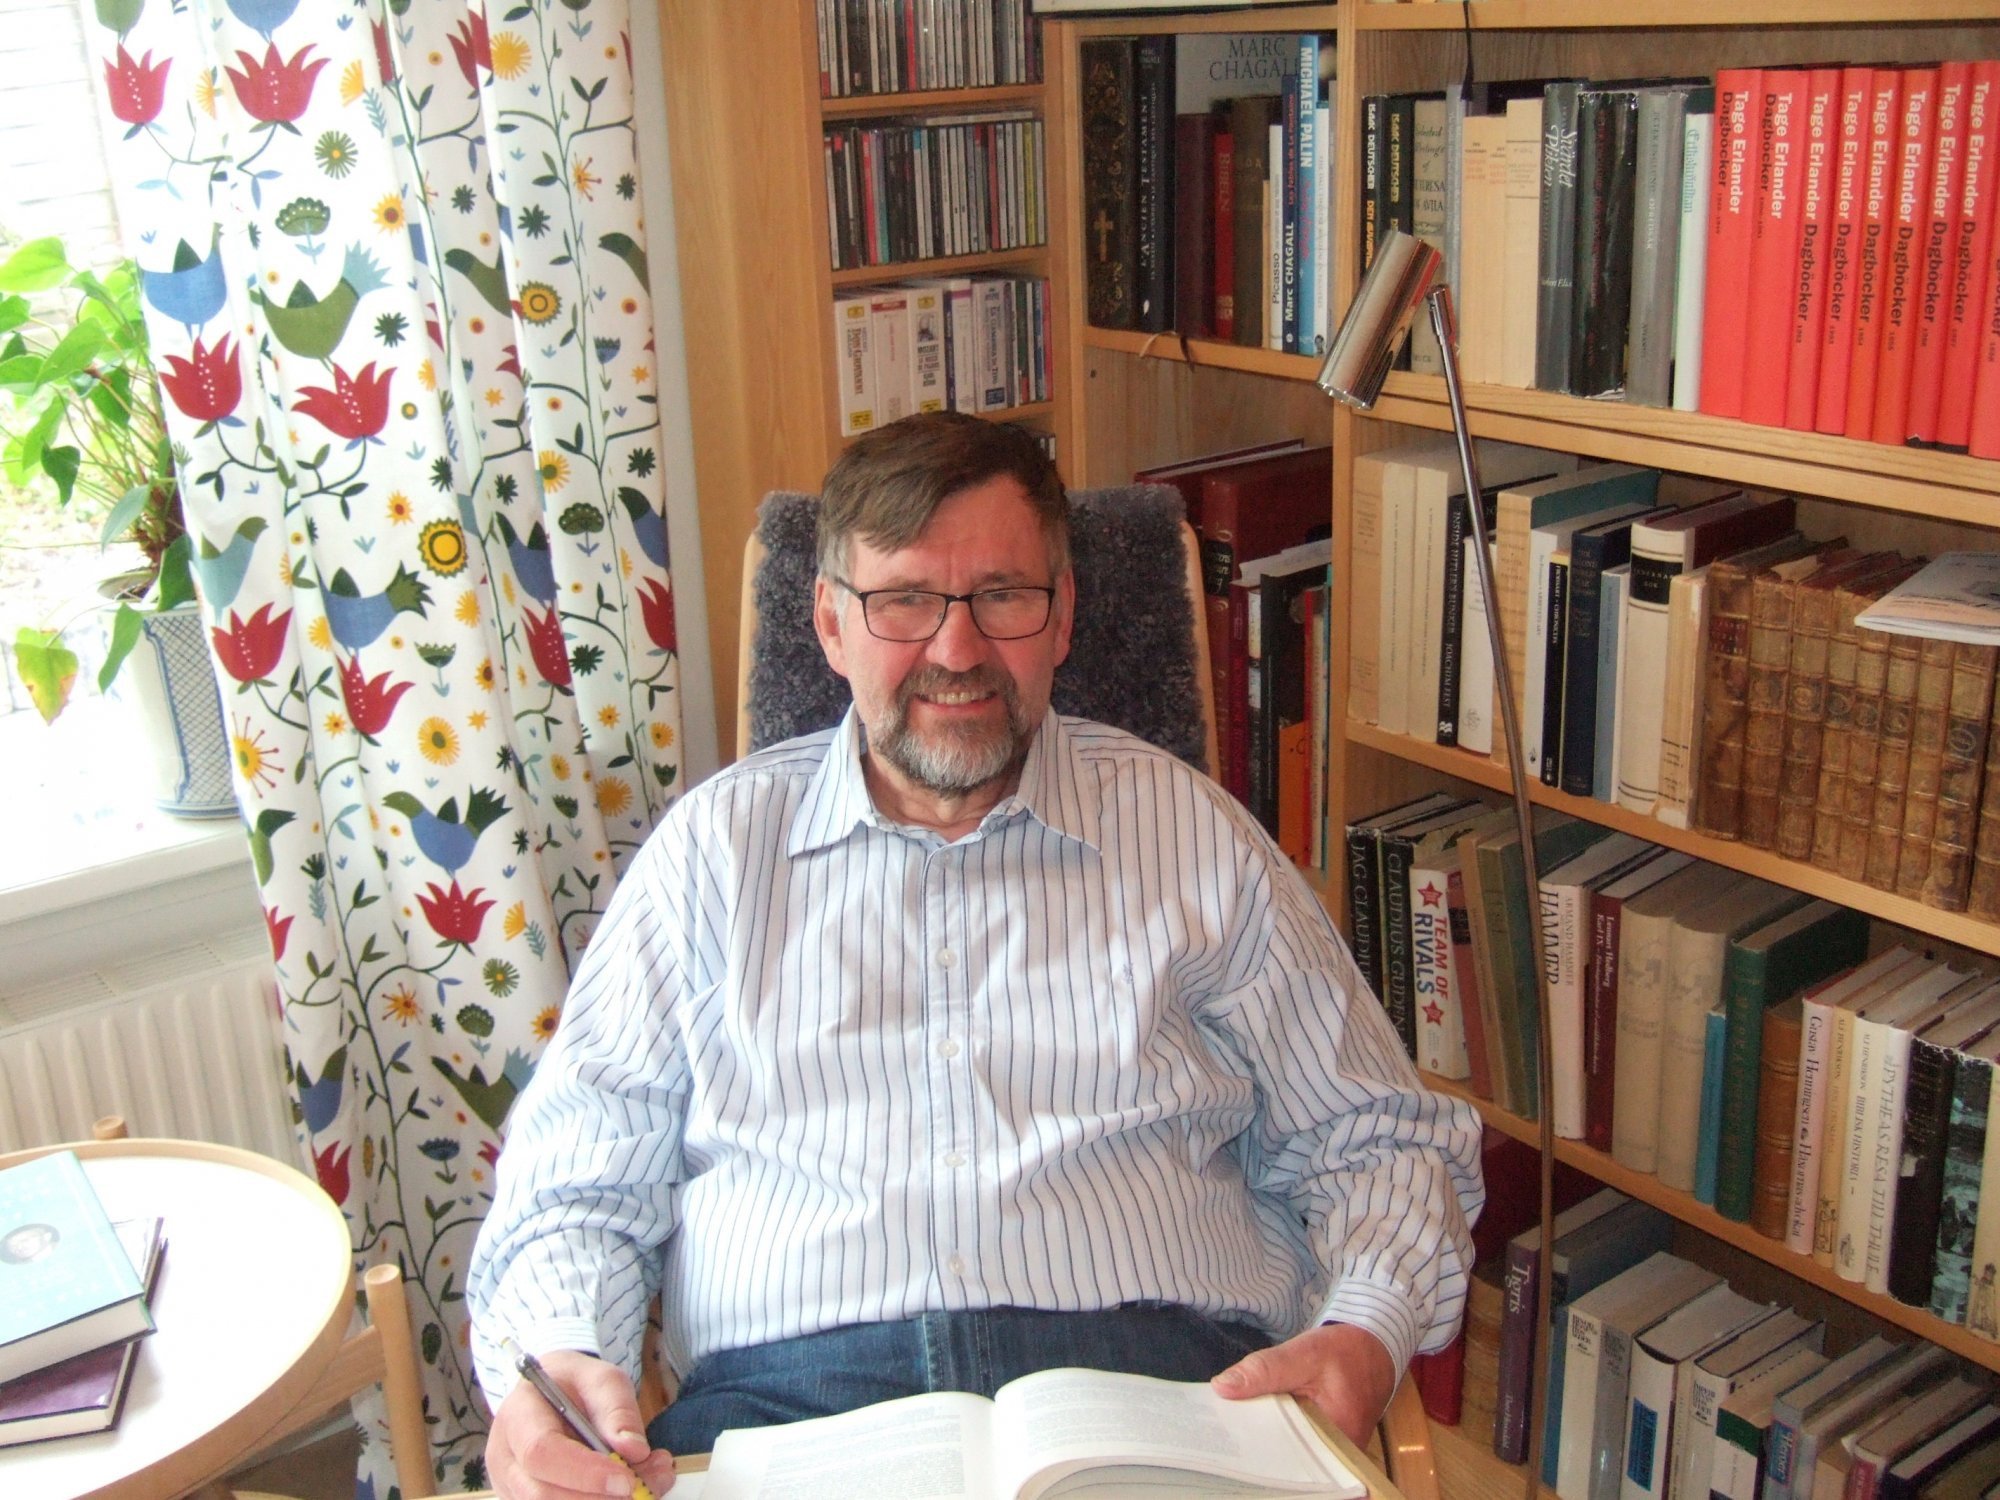 Author - Hasse  Ekstedt